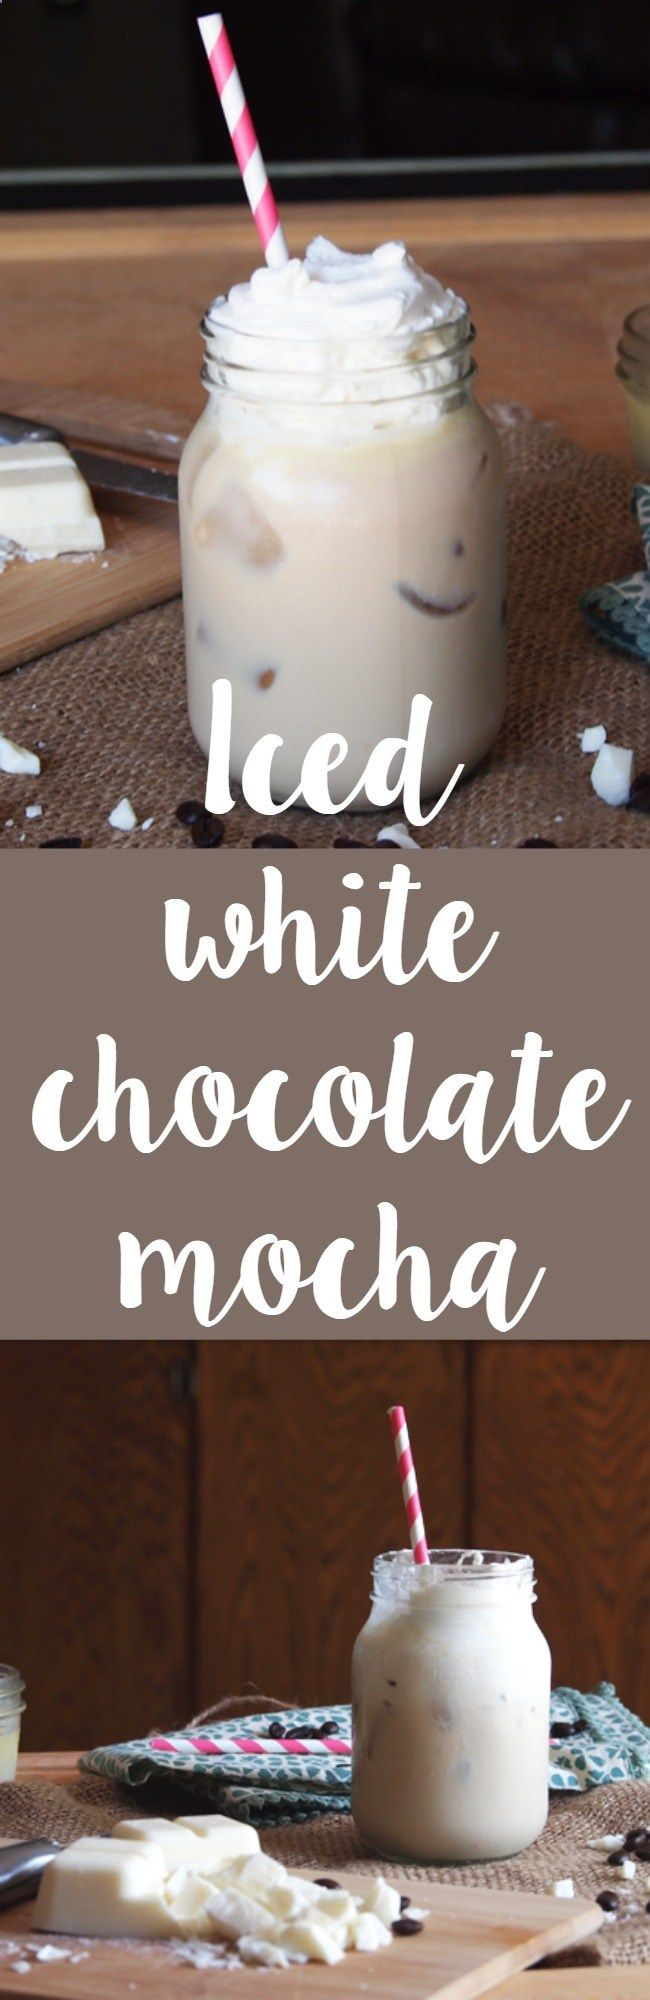 Iced Coffee - Homemade iced white chocolate mocha! Make this easy and oh so delicious Starbucks drink at home!